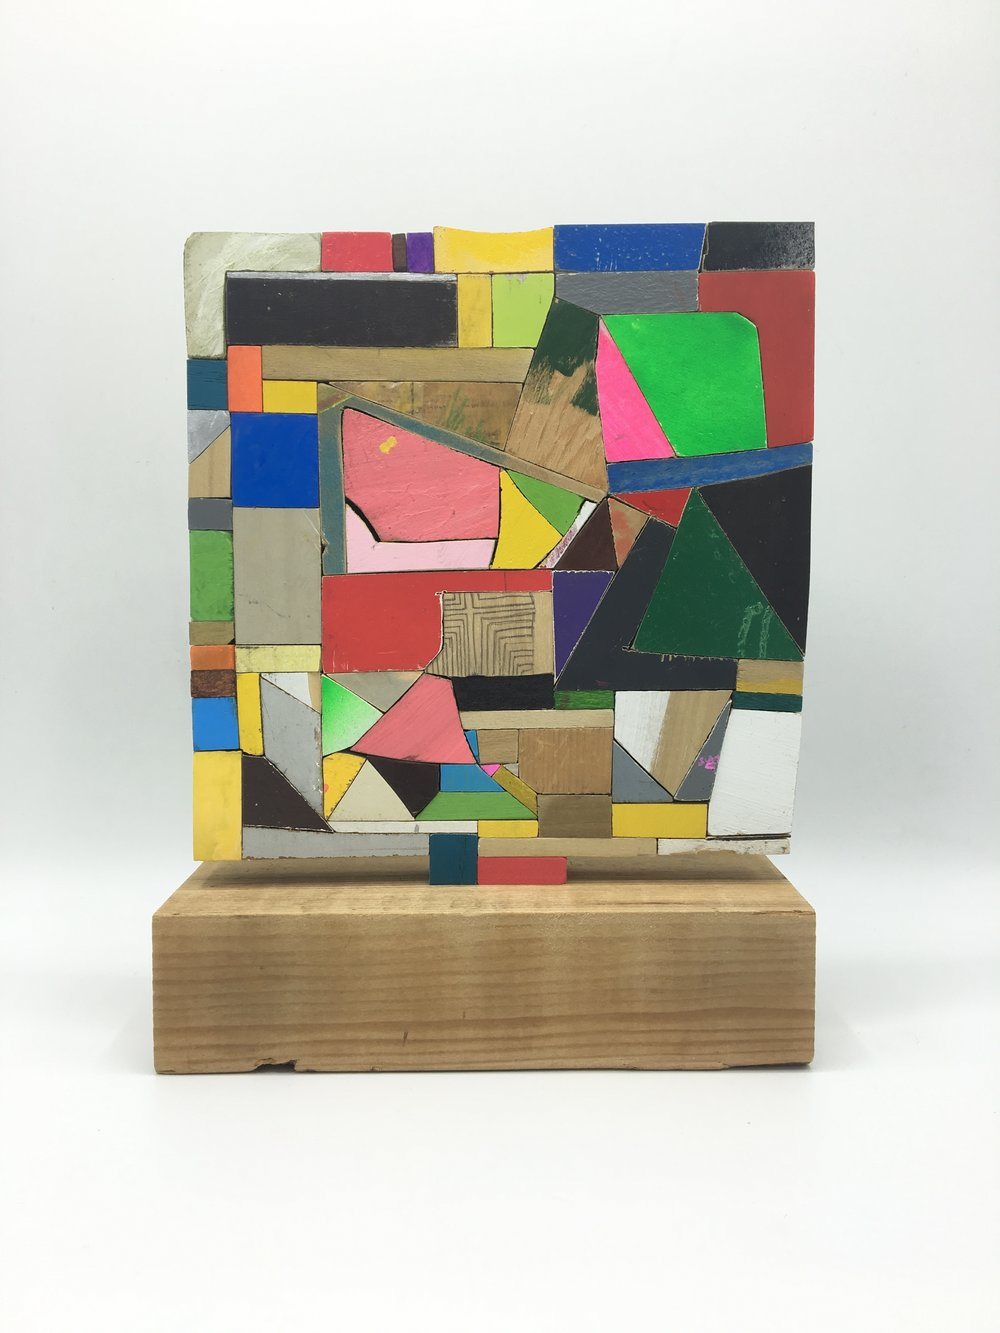 Patch , 2017   Wood, Paint, Glue   9 x 7 x 2  ½  in.